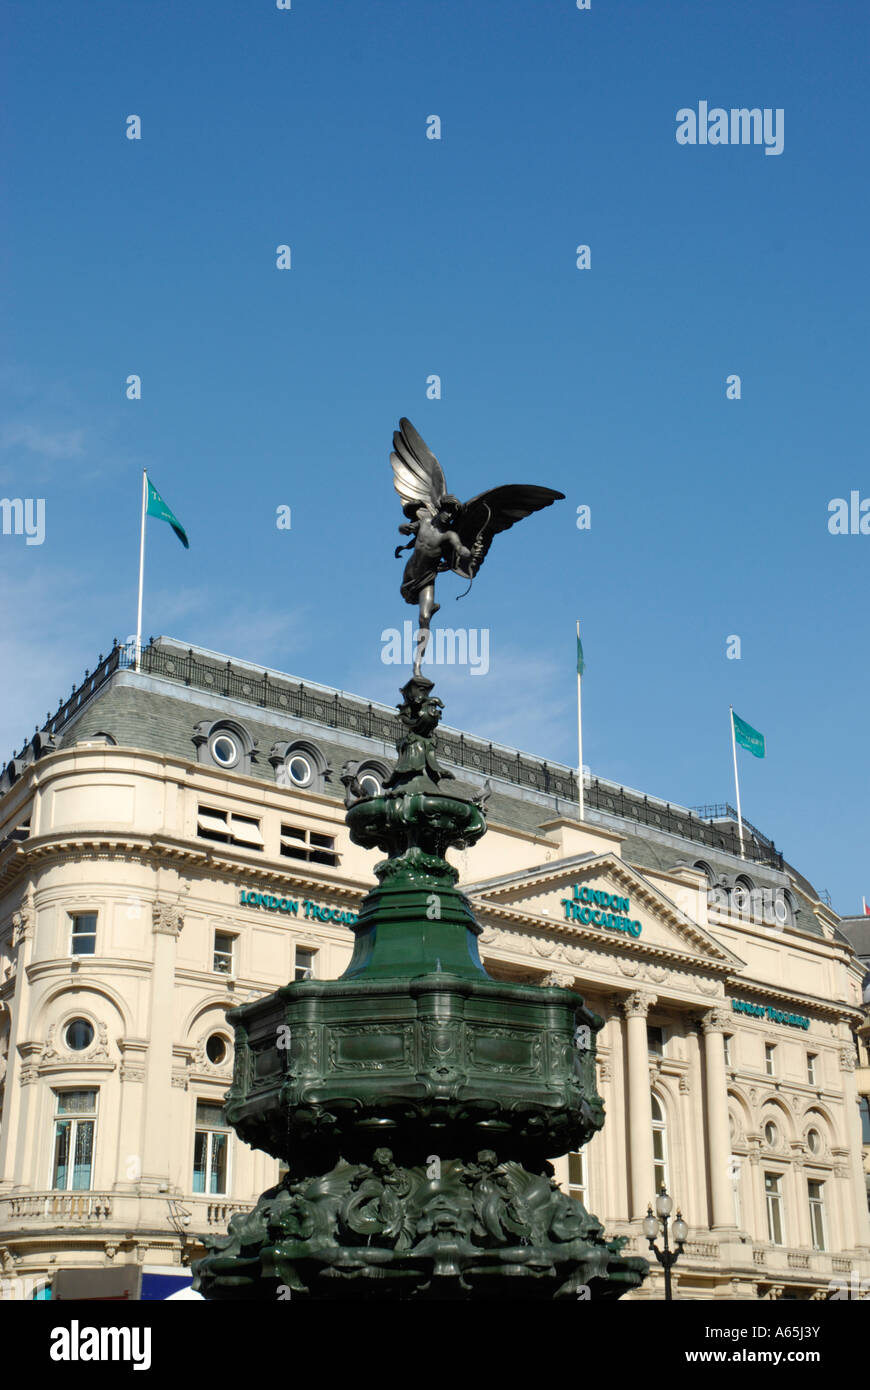 Statue of Eros against the London Trocadero Piccadilly Circus London England - Stock Image